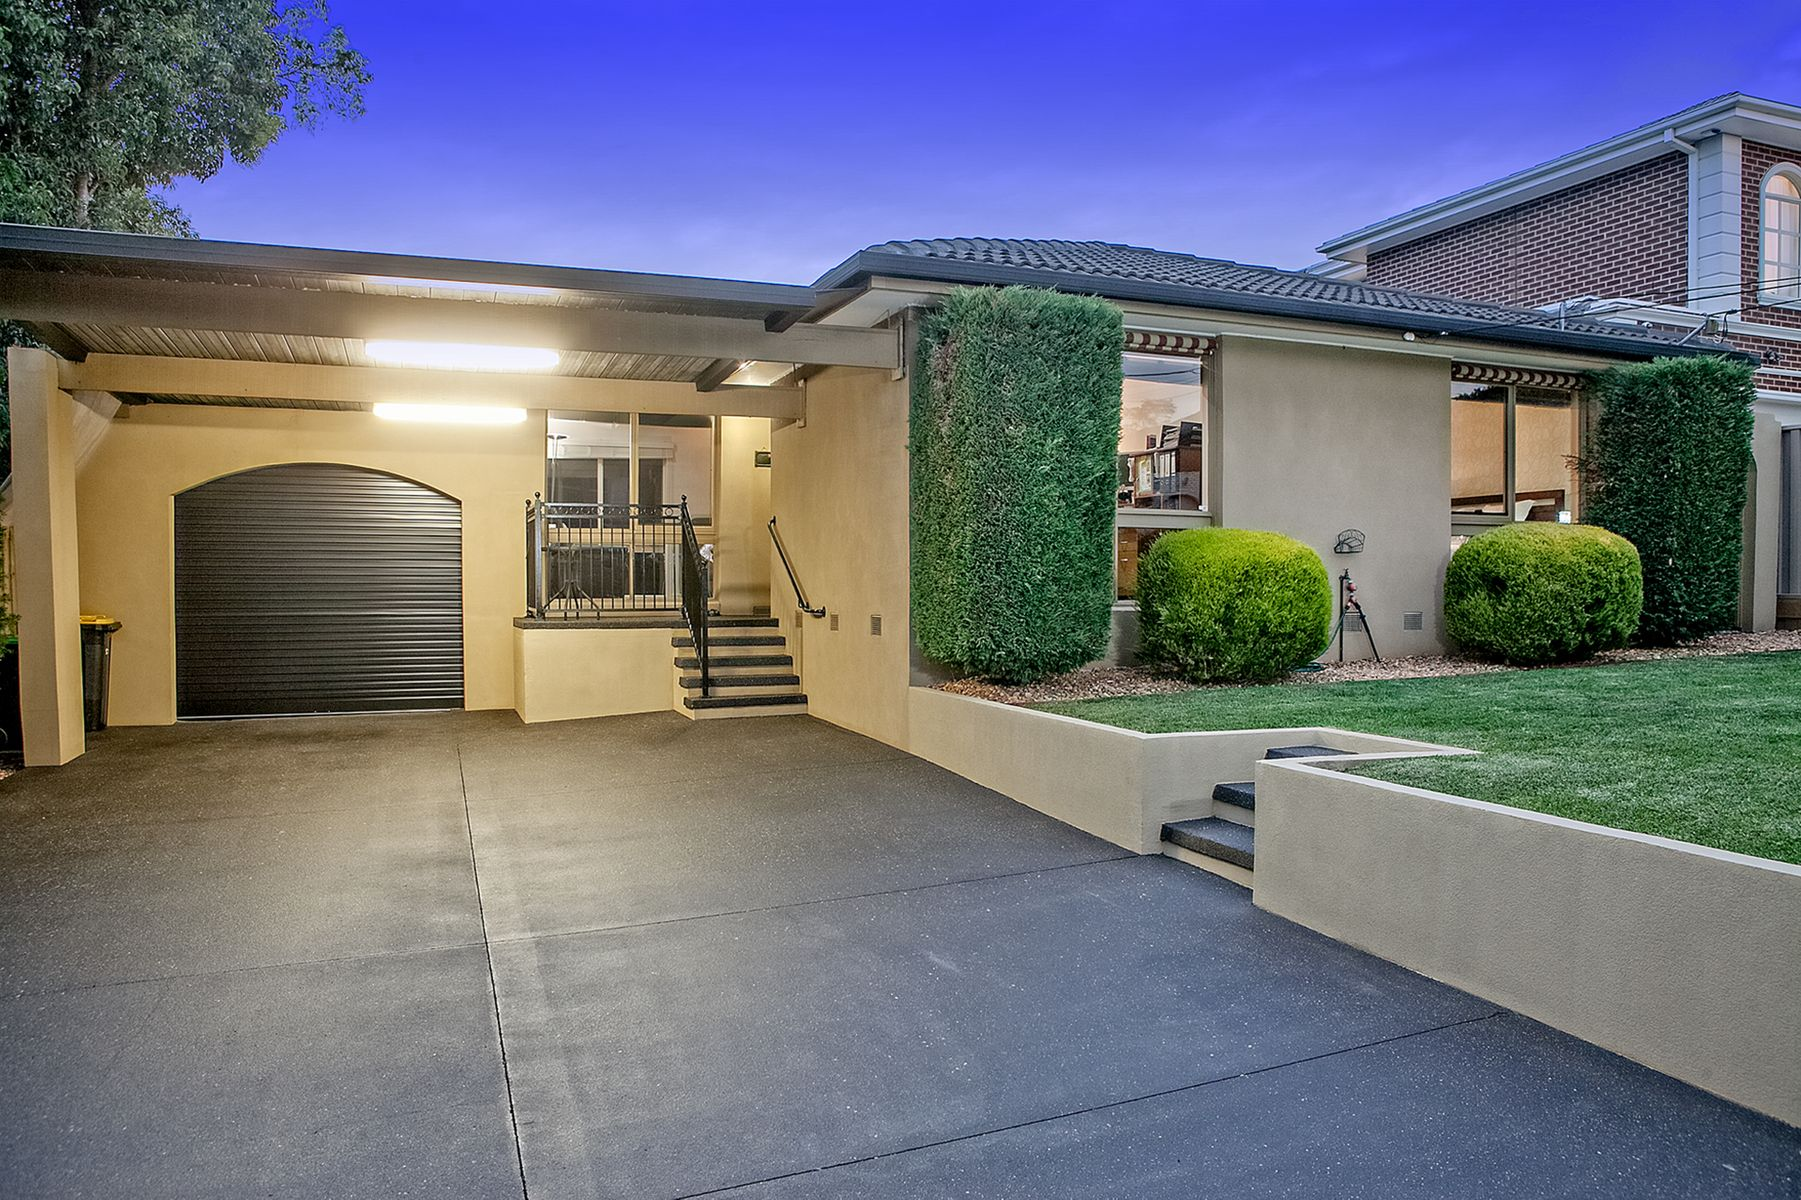 29 Dorset Road, Dandenong North, VIC 3175